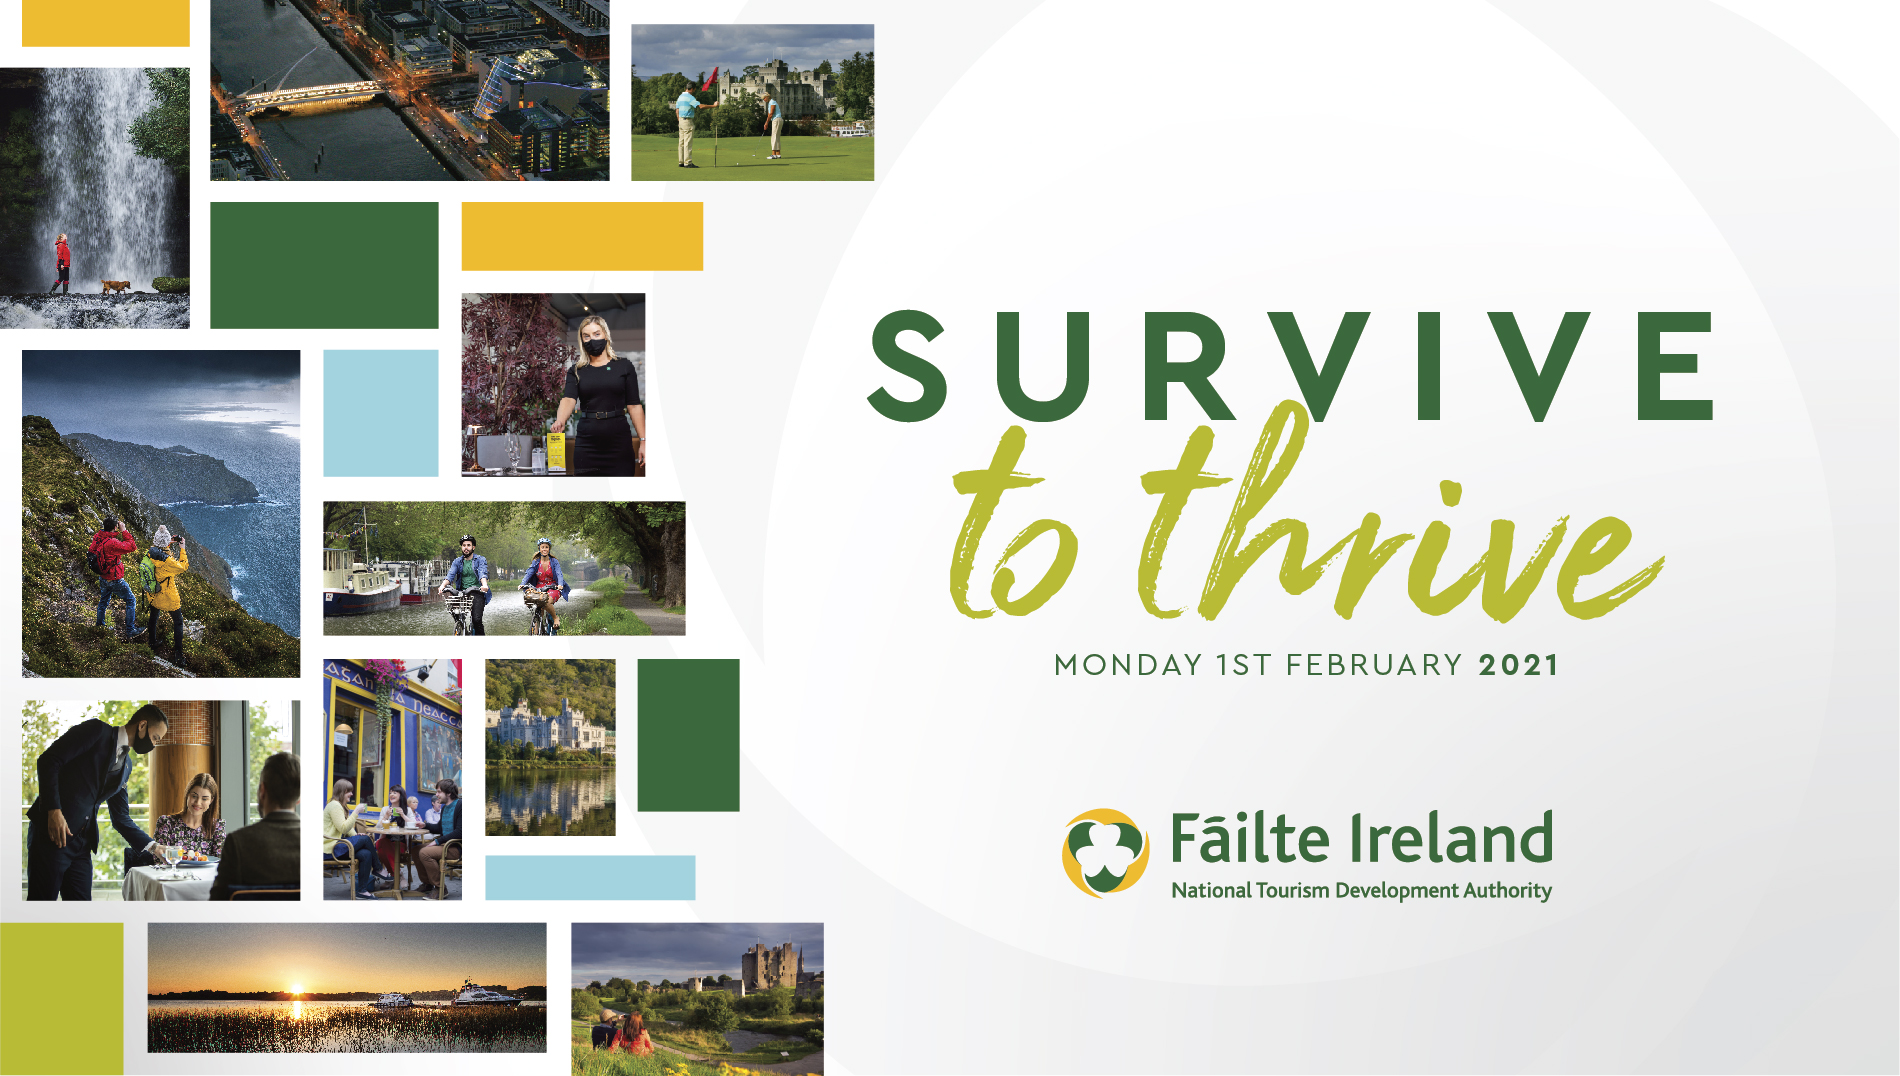 Fáilte Ireland announces details of new €55million business continuity scheme for the tourism sector and priorities for 2021